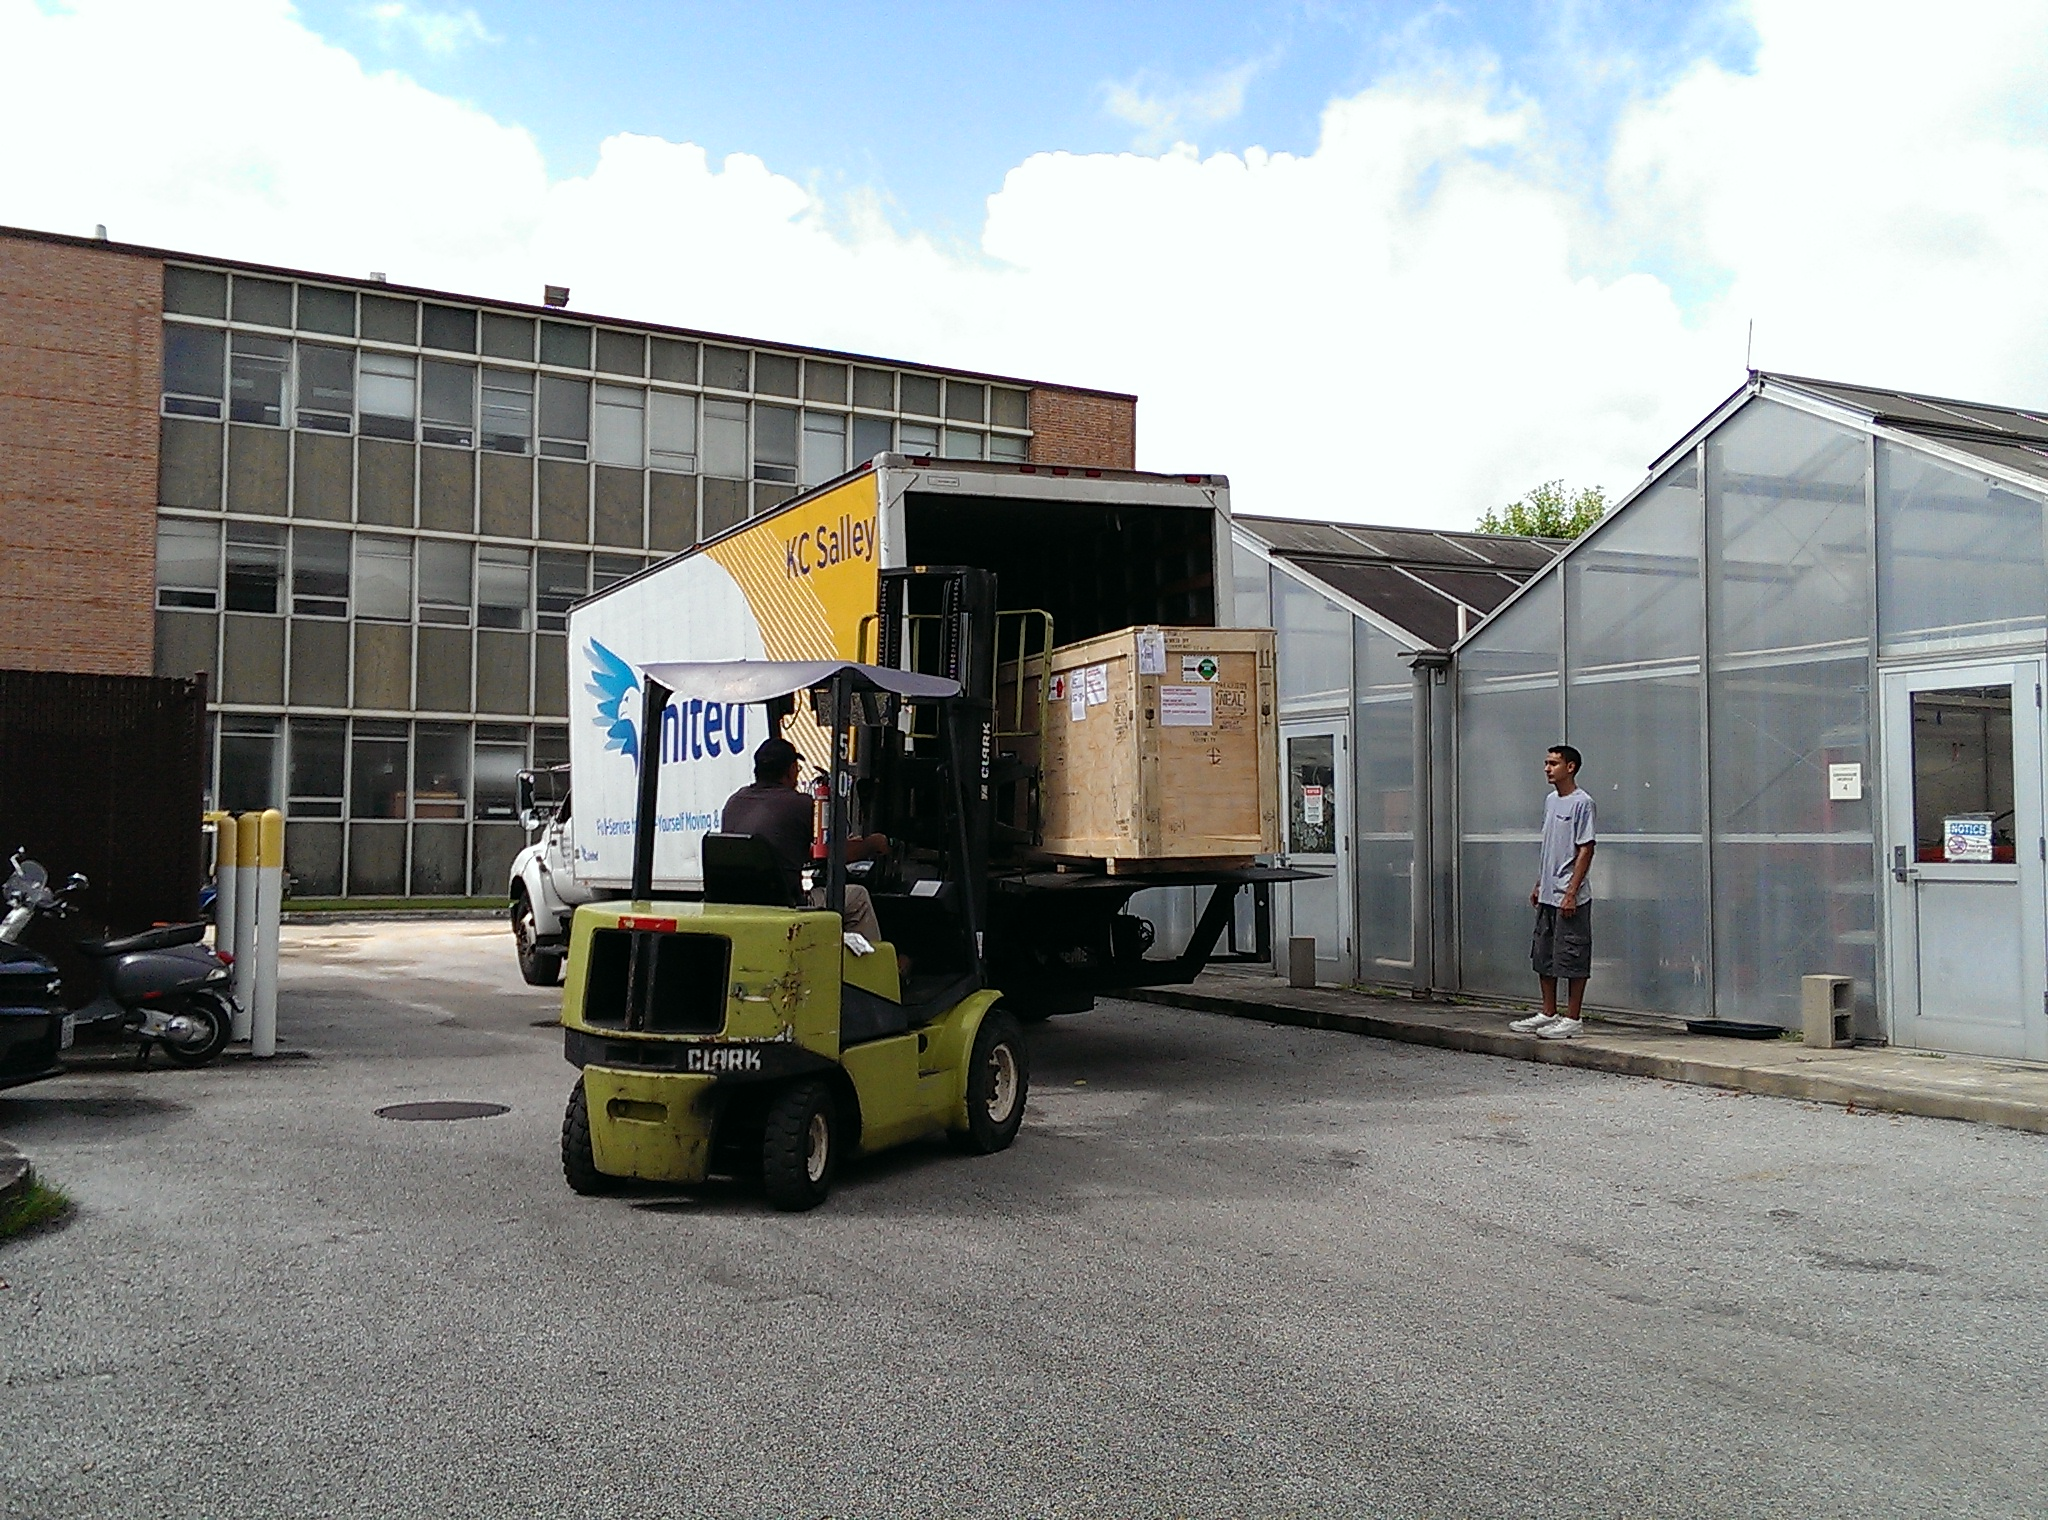 It's here! The mass spec is here!